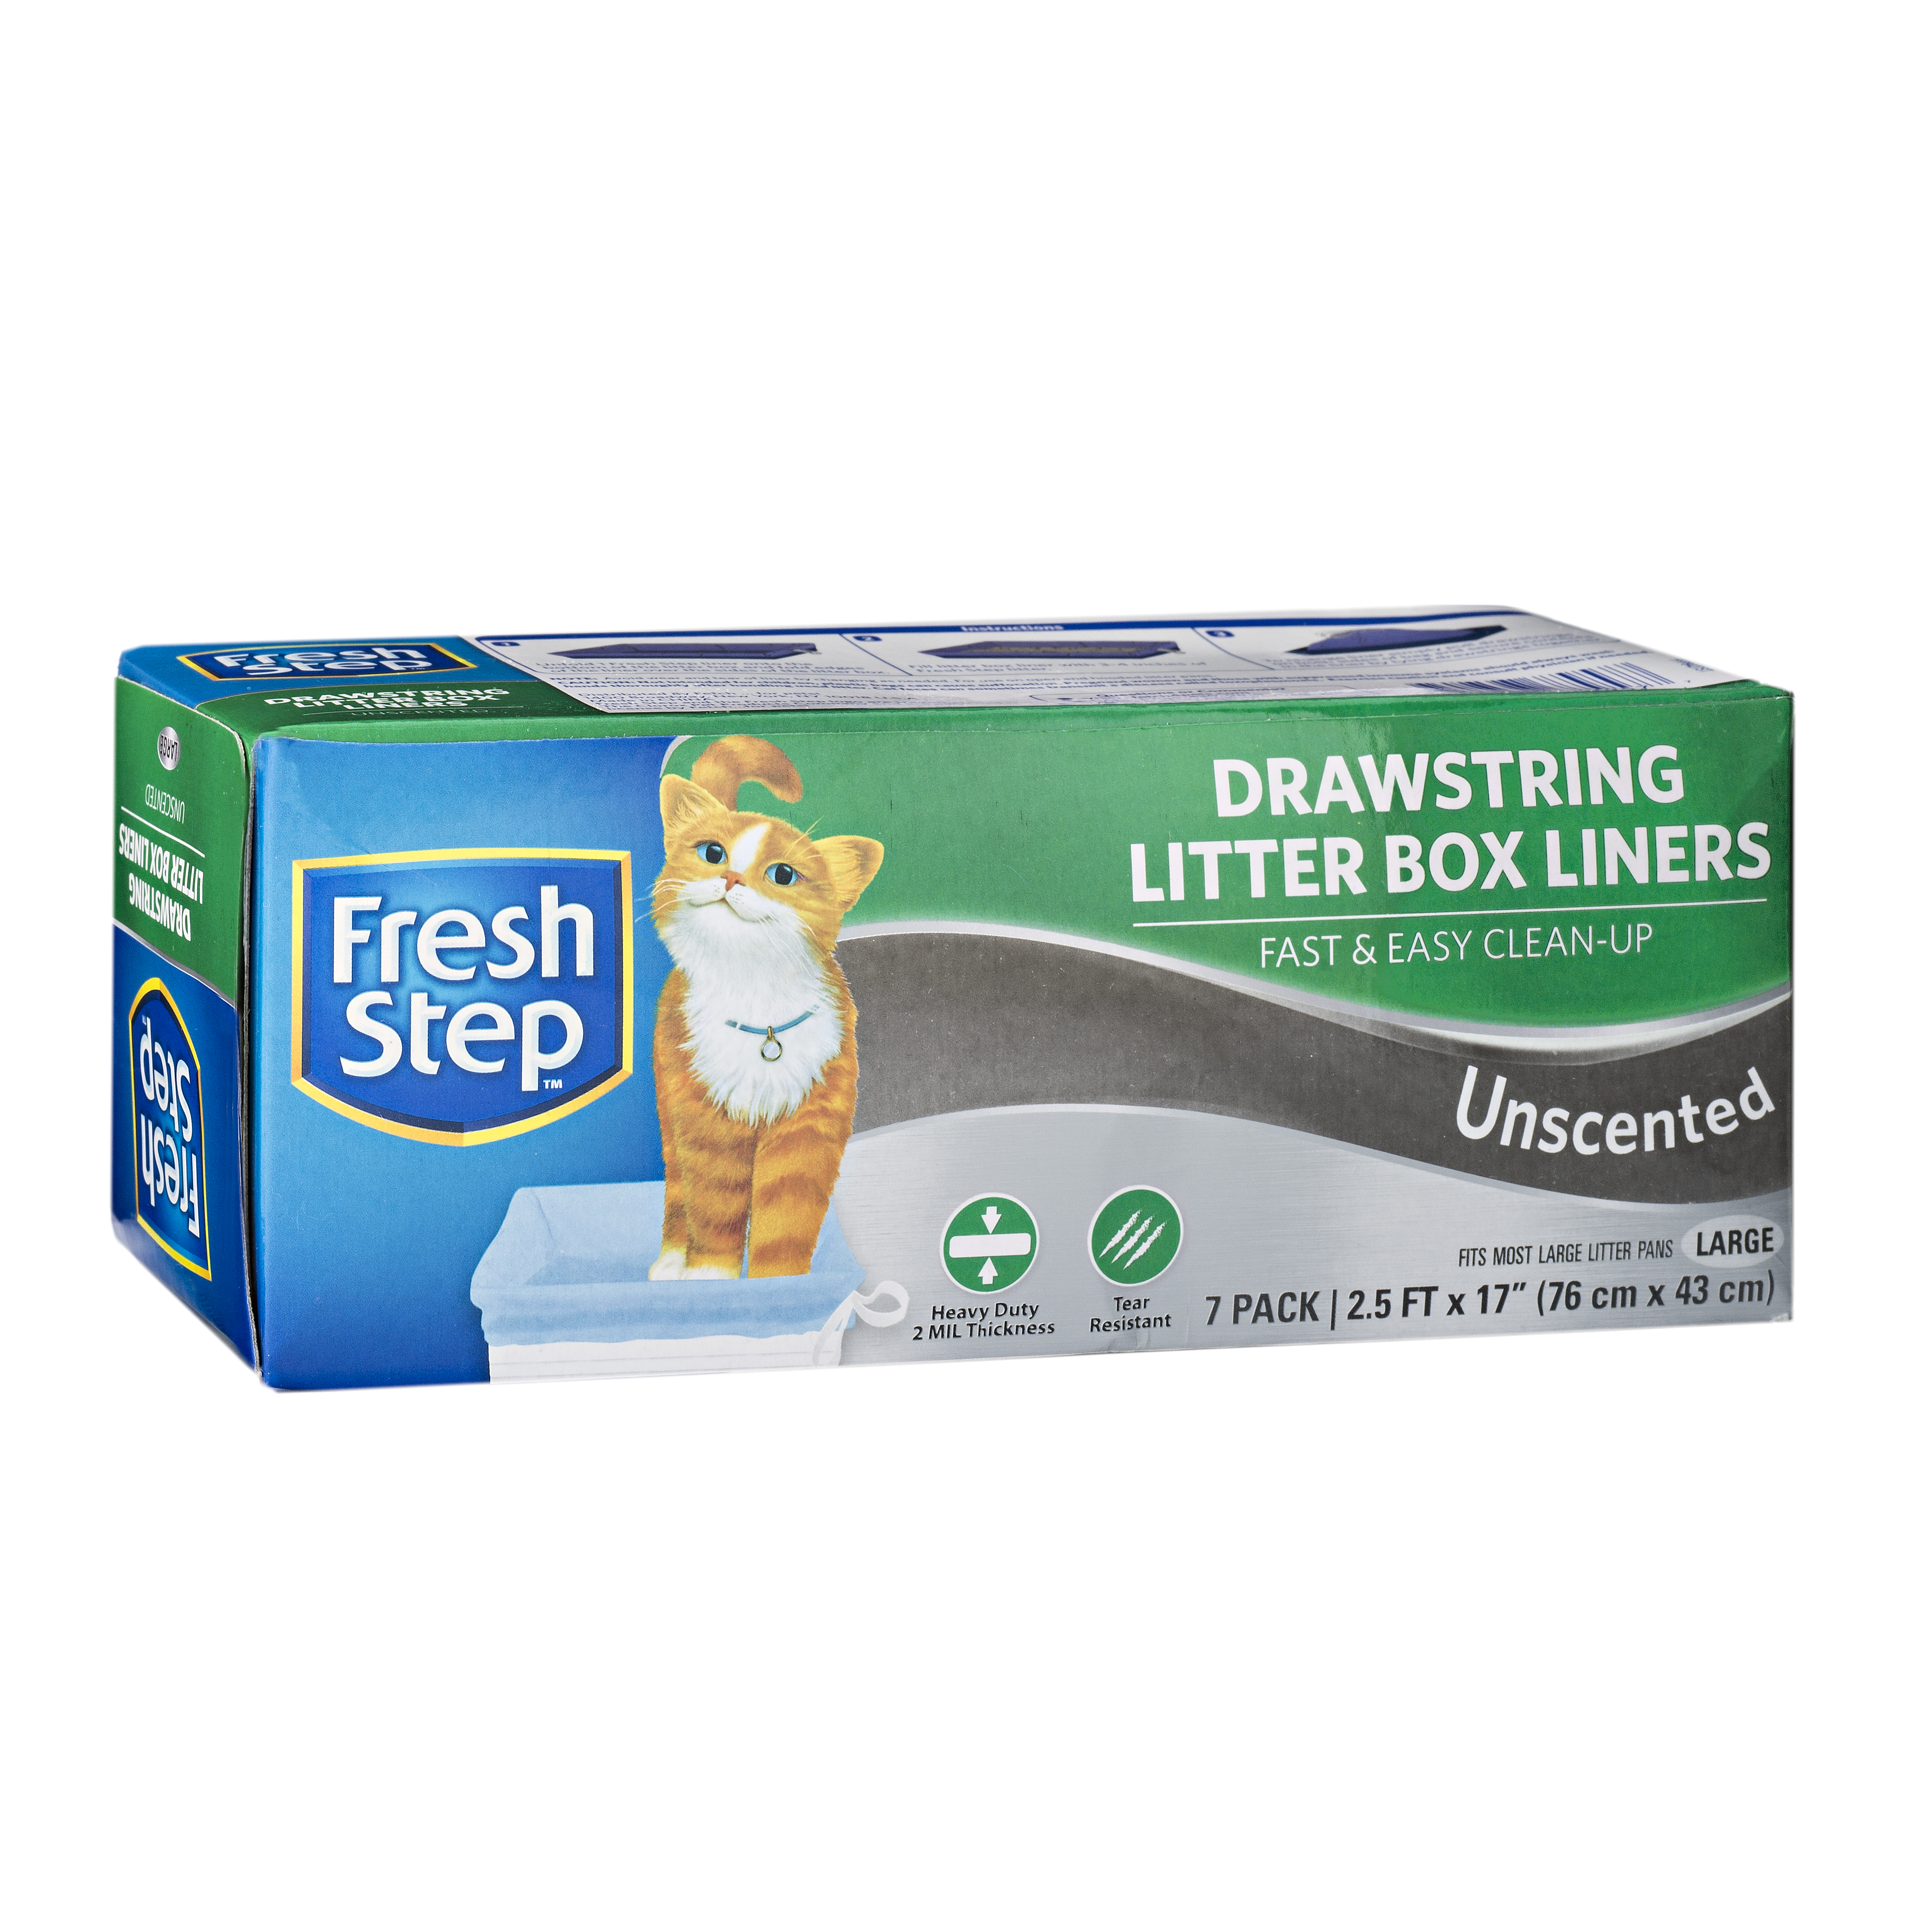 Fresh Step Drawstring Litter Box Liners, Large